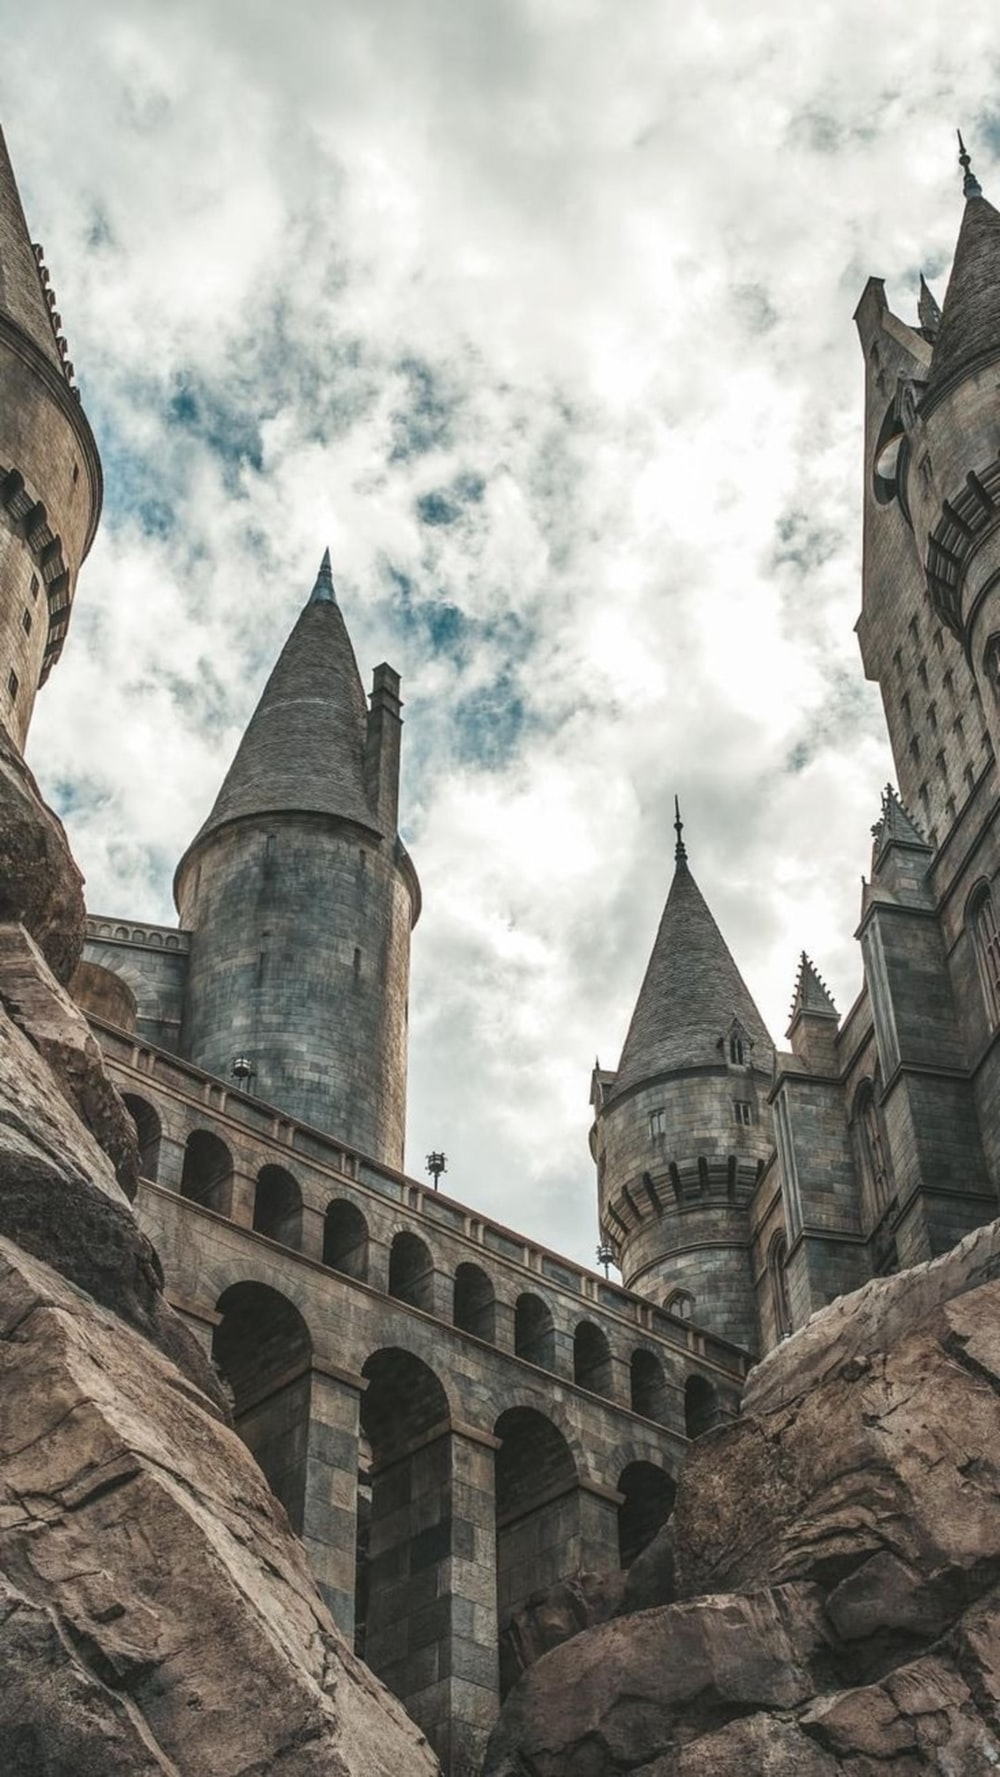 white clouds hovering above grey castle